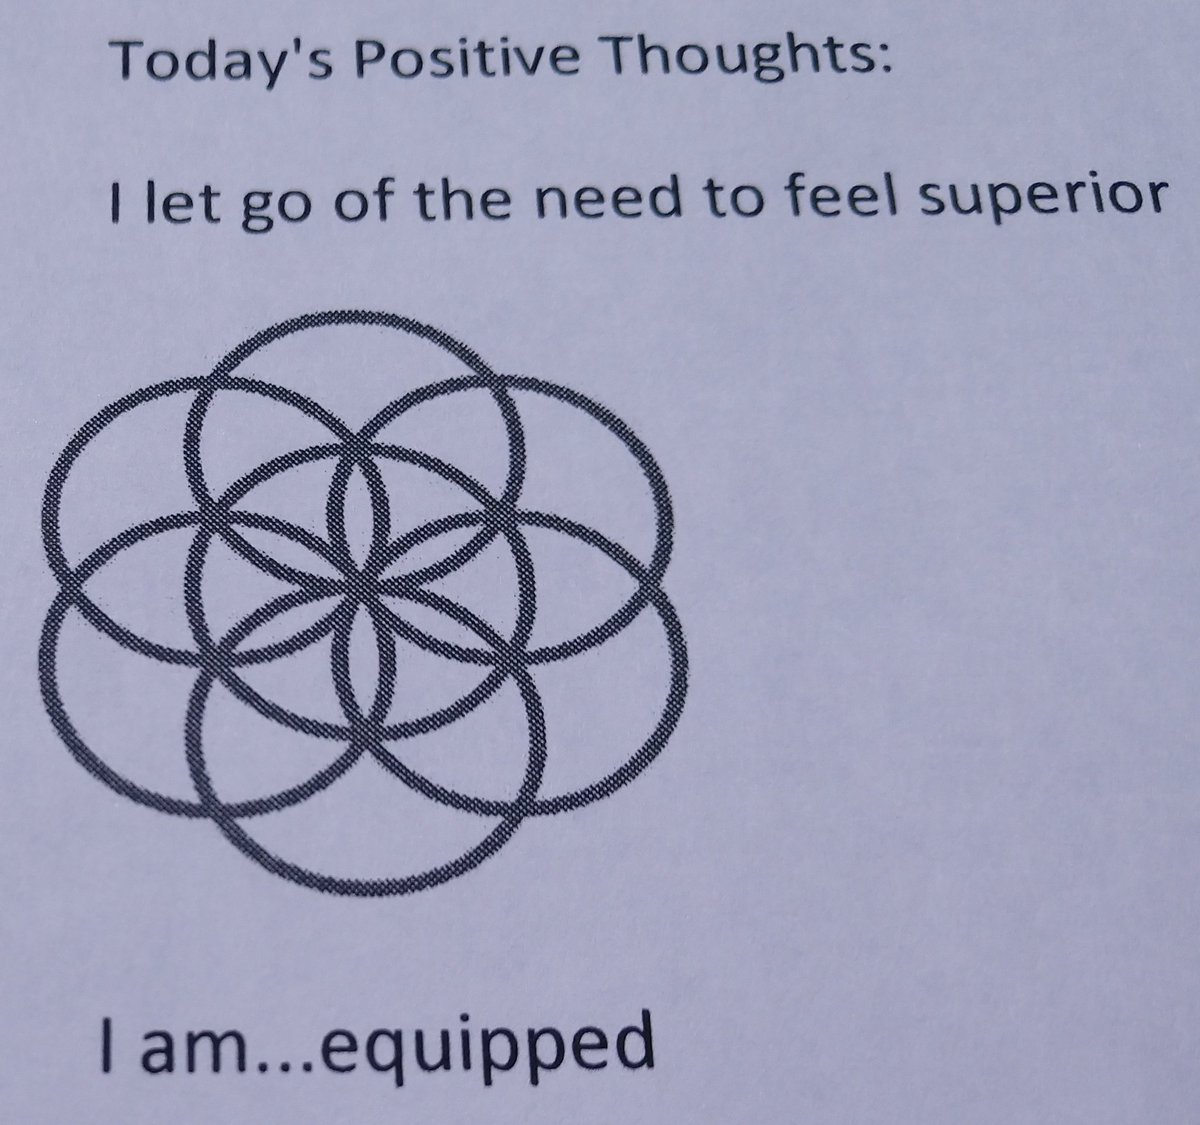 test Twitter Media - Today's Positive Thoughts: I let go of the need to feel superior and I am...equipped. #affirmation. https://t.co/kxw8XSBgfp